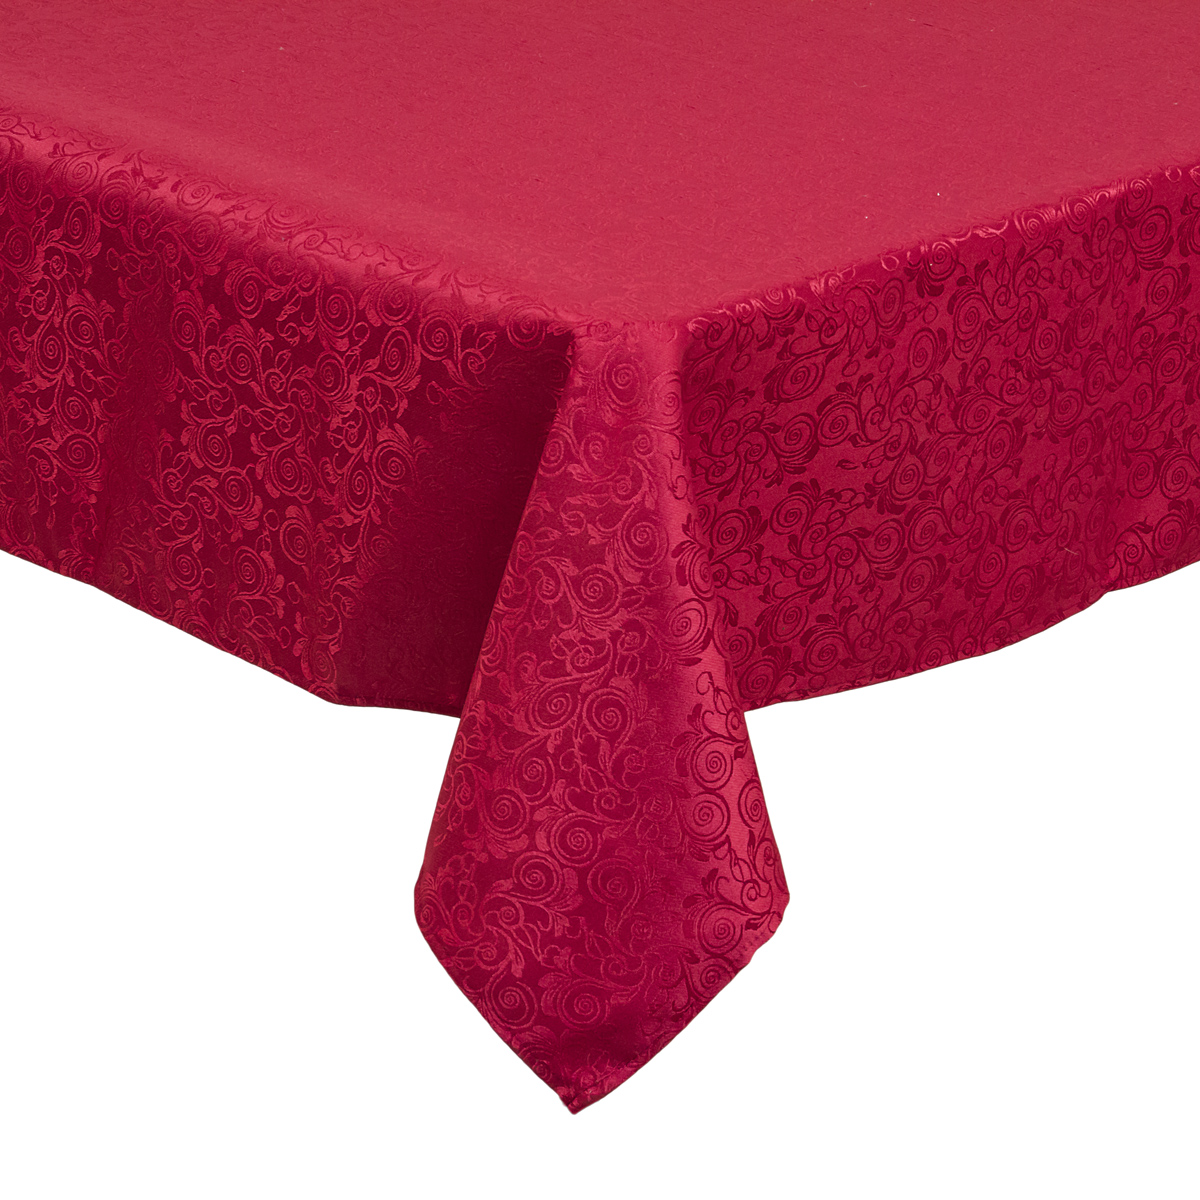 70 x 108 in. Rectangular Shimmering Filigree Tablecloth Burgundy